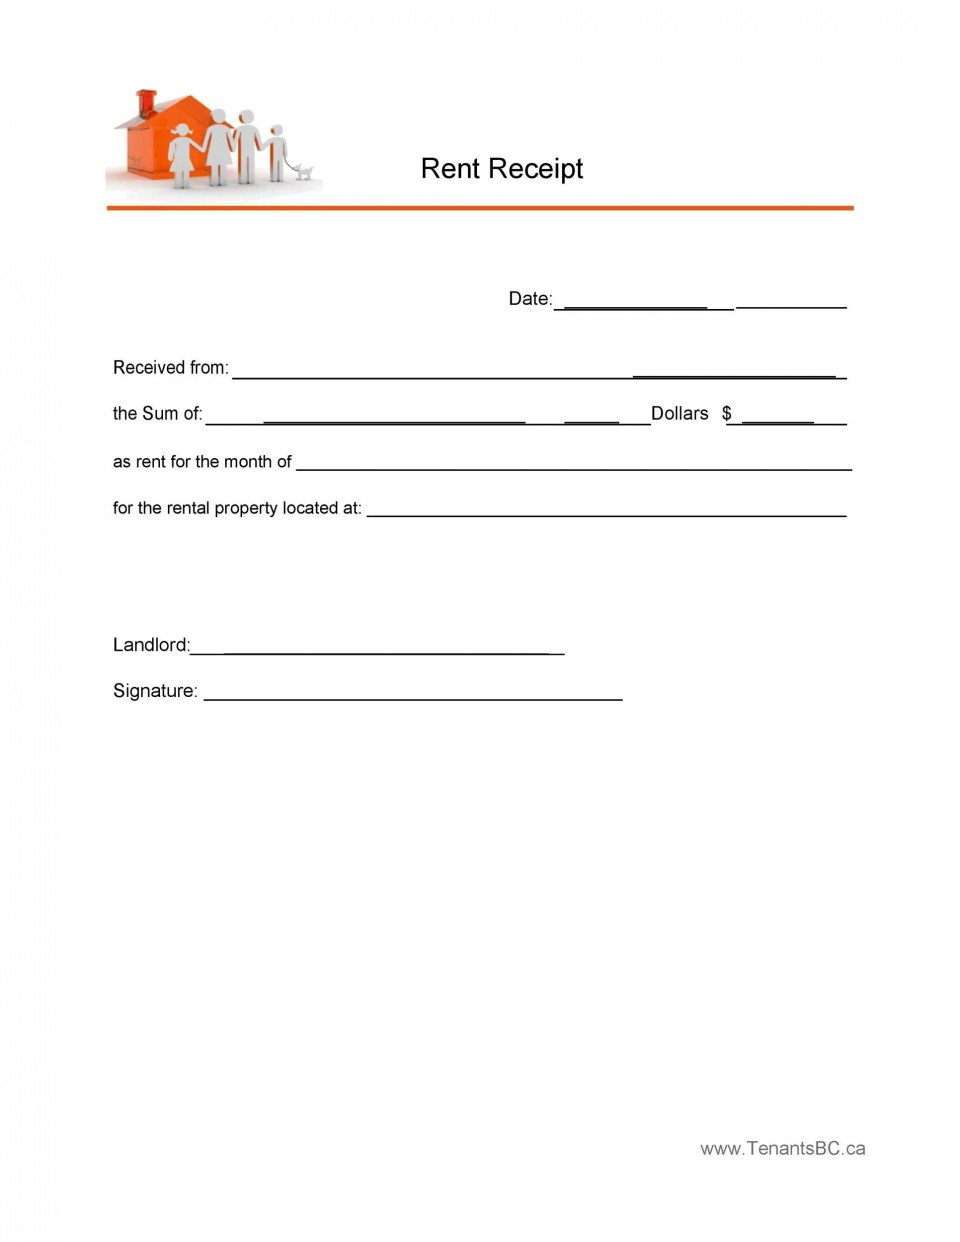 008 Surprising House Rent Receipt Sample Doc Highest Clarity  Template India Bill Format Word Document Pdf Download960